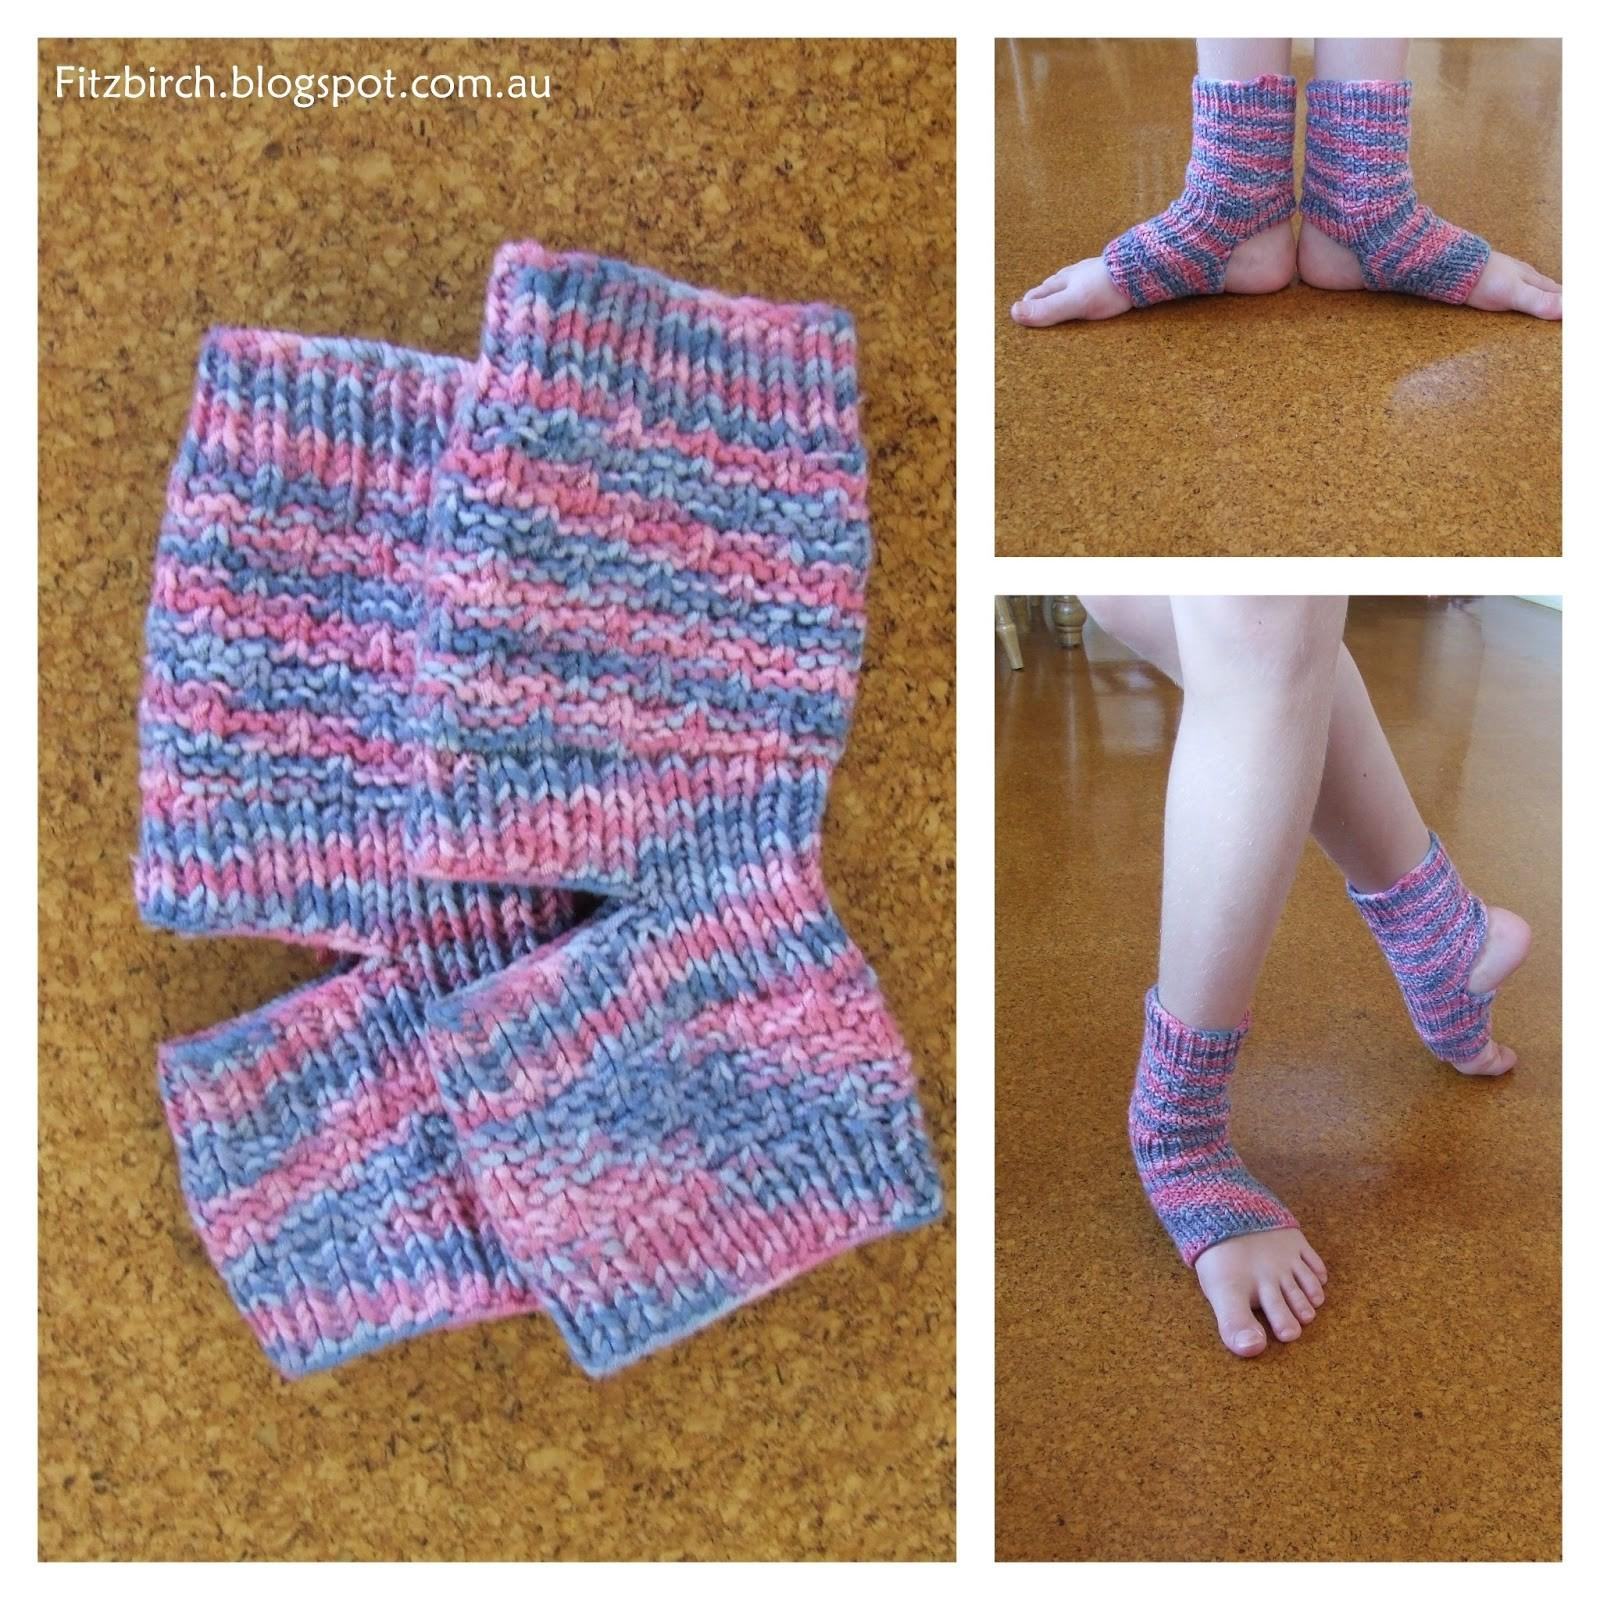 Fitzbirch Crafts Yoga Socks Ballerina